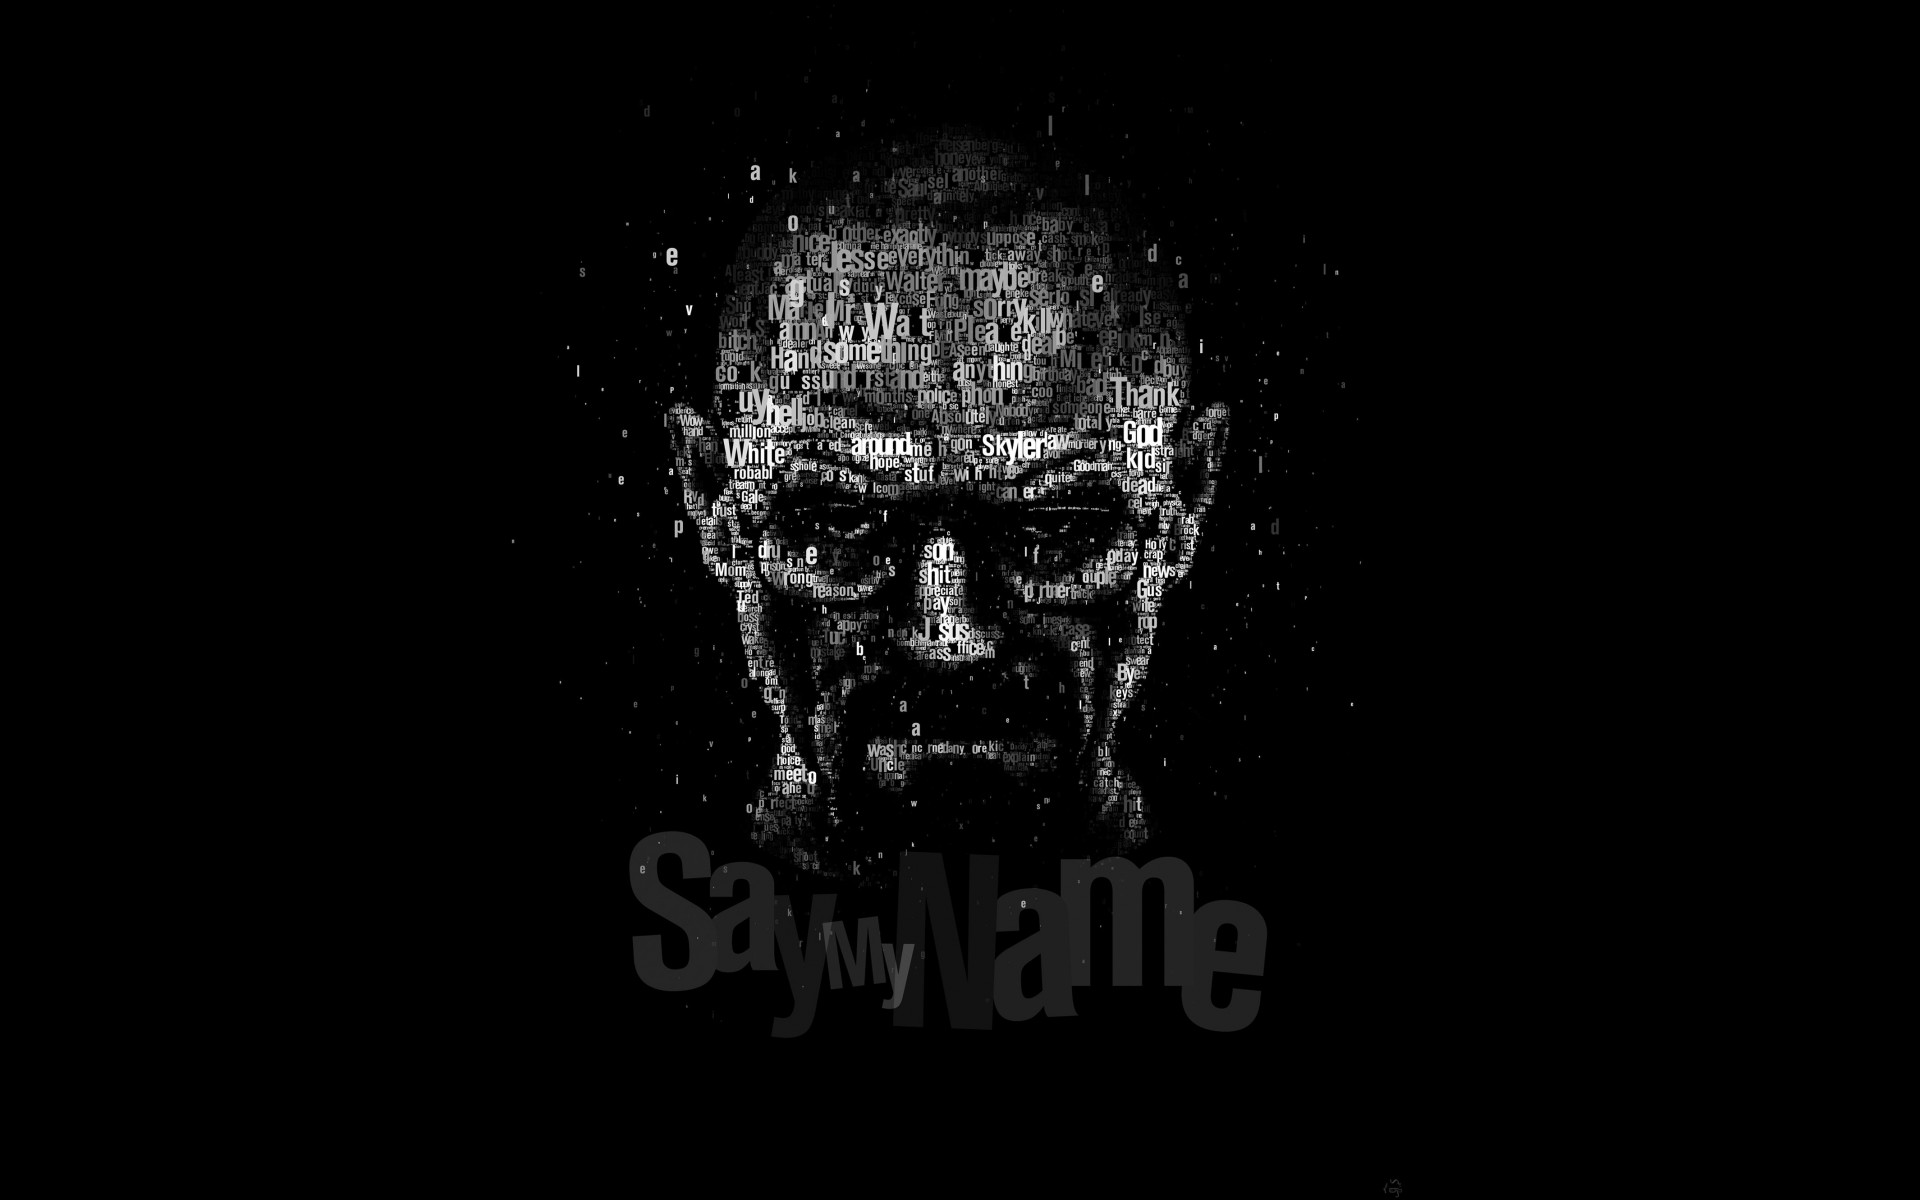 Say My Name - Typography Art Wallpaper for Desktop 1920x1200